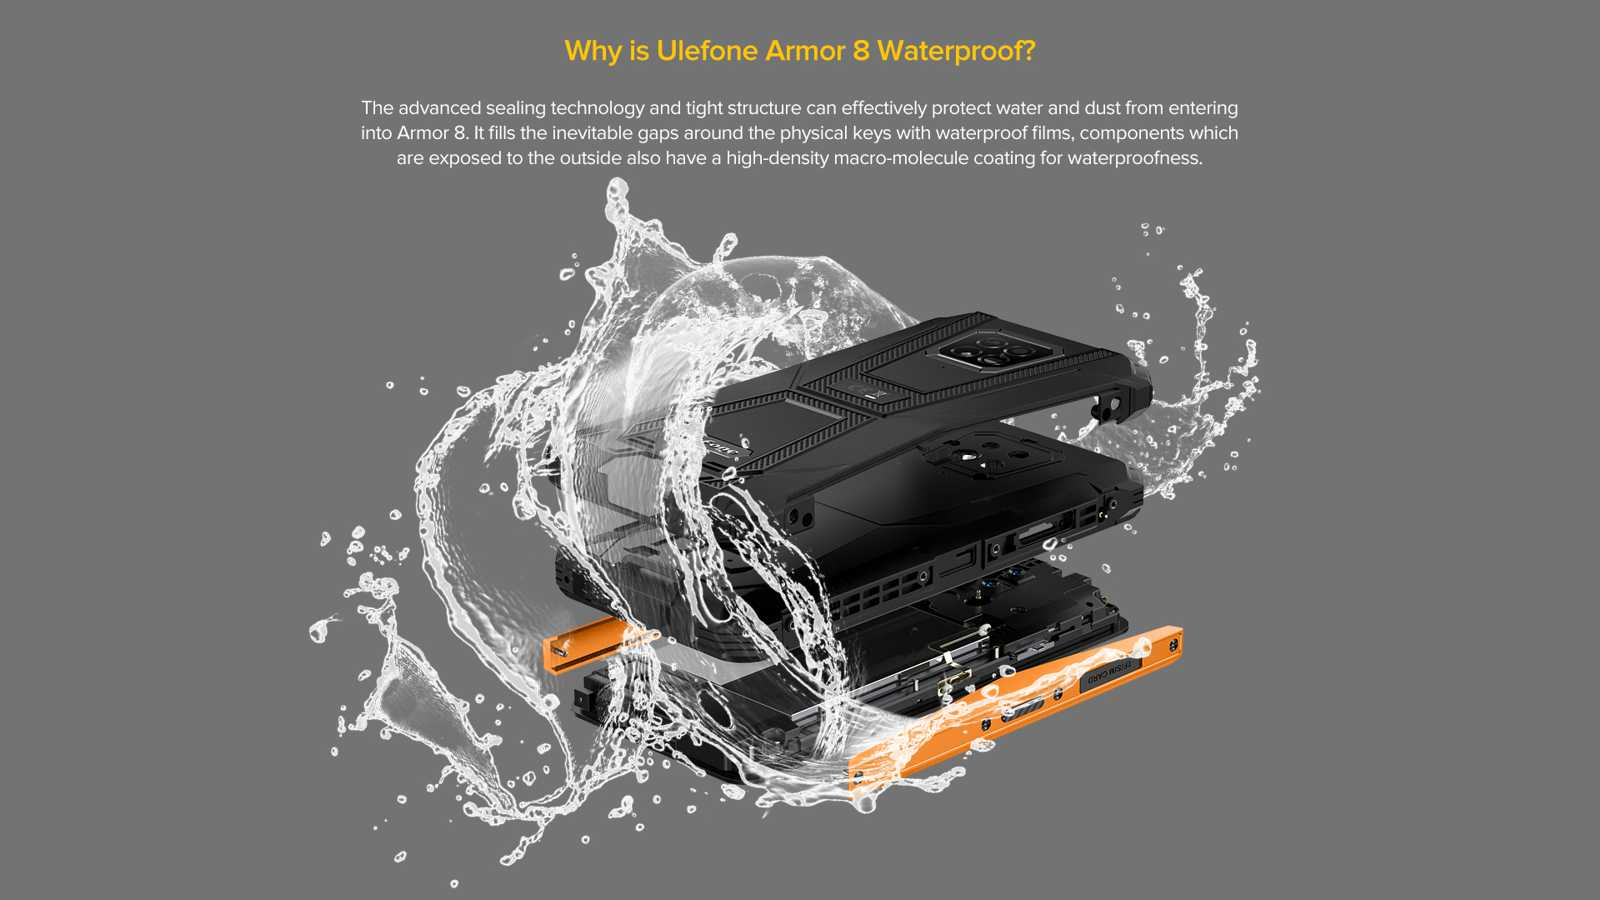 ulefone armor 8 waterproof